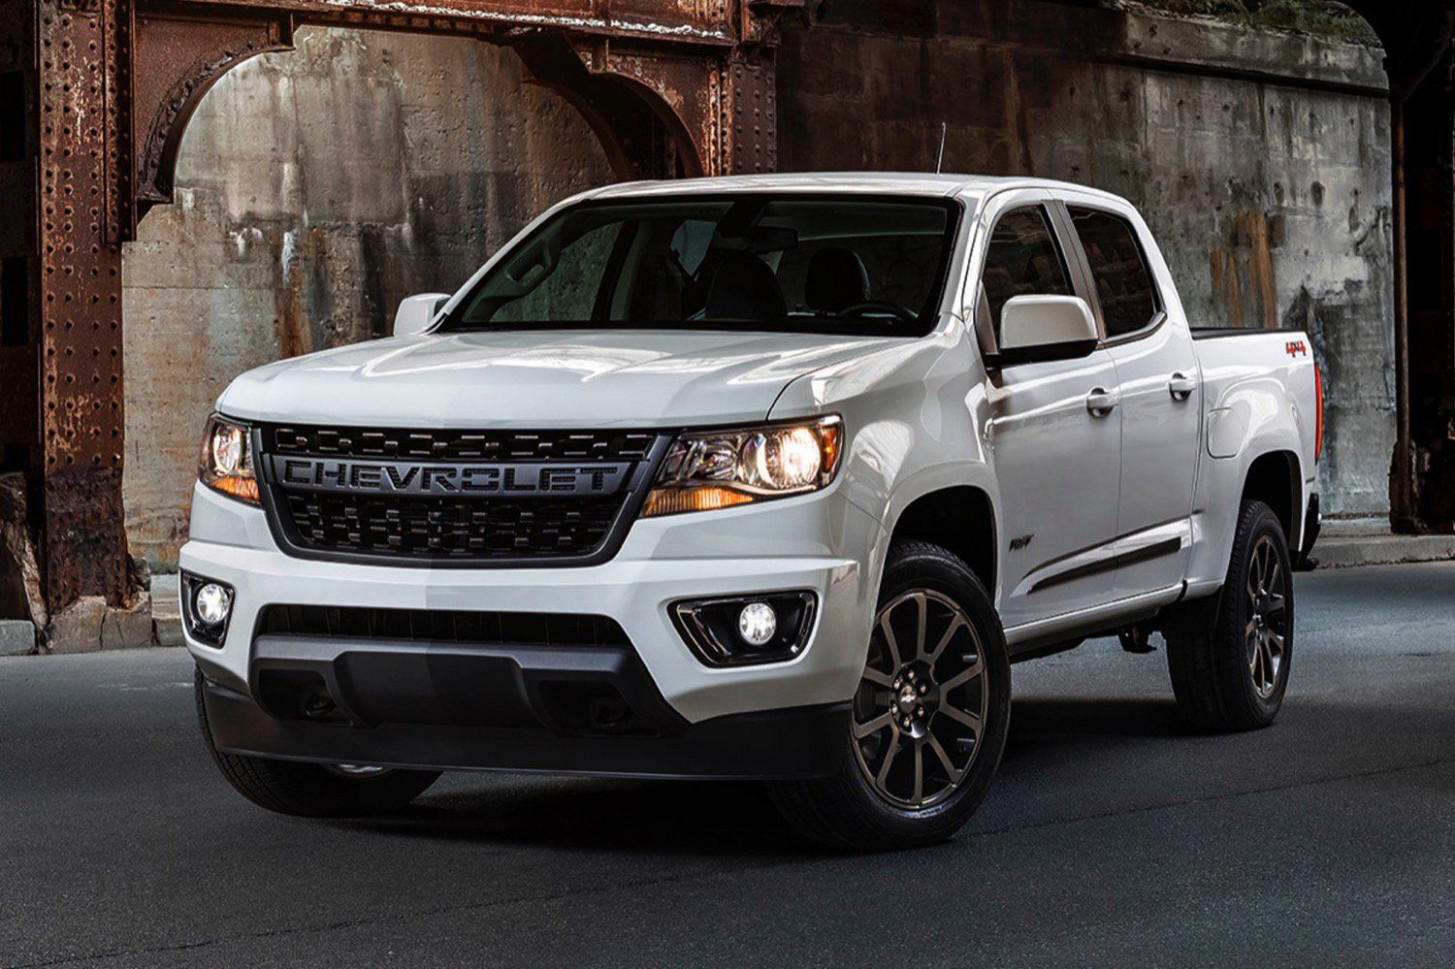 All New Chevrolet Colorado 6 (With images) | Chevrolet colorado ..